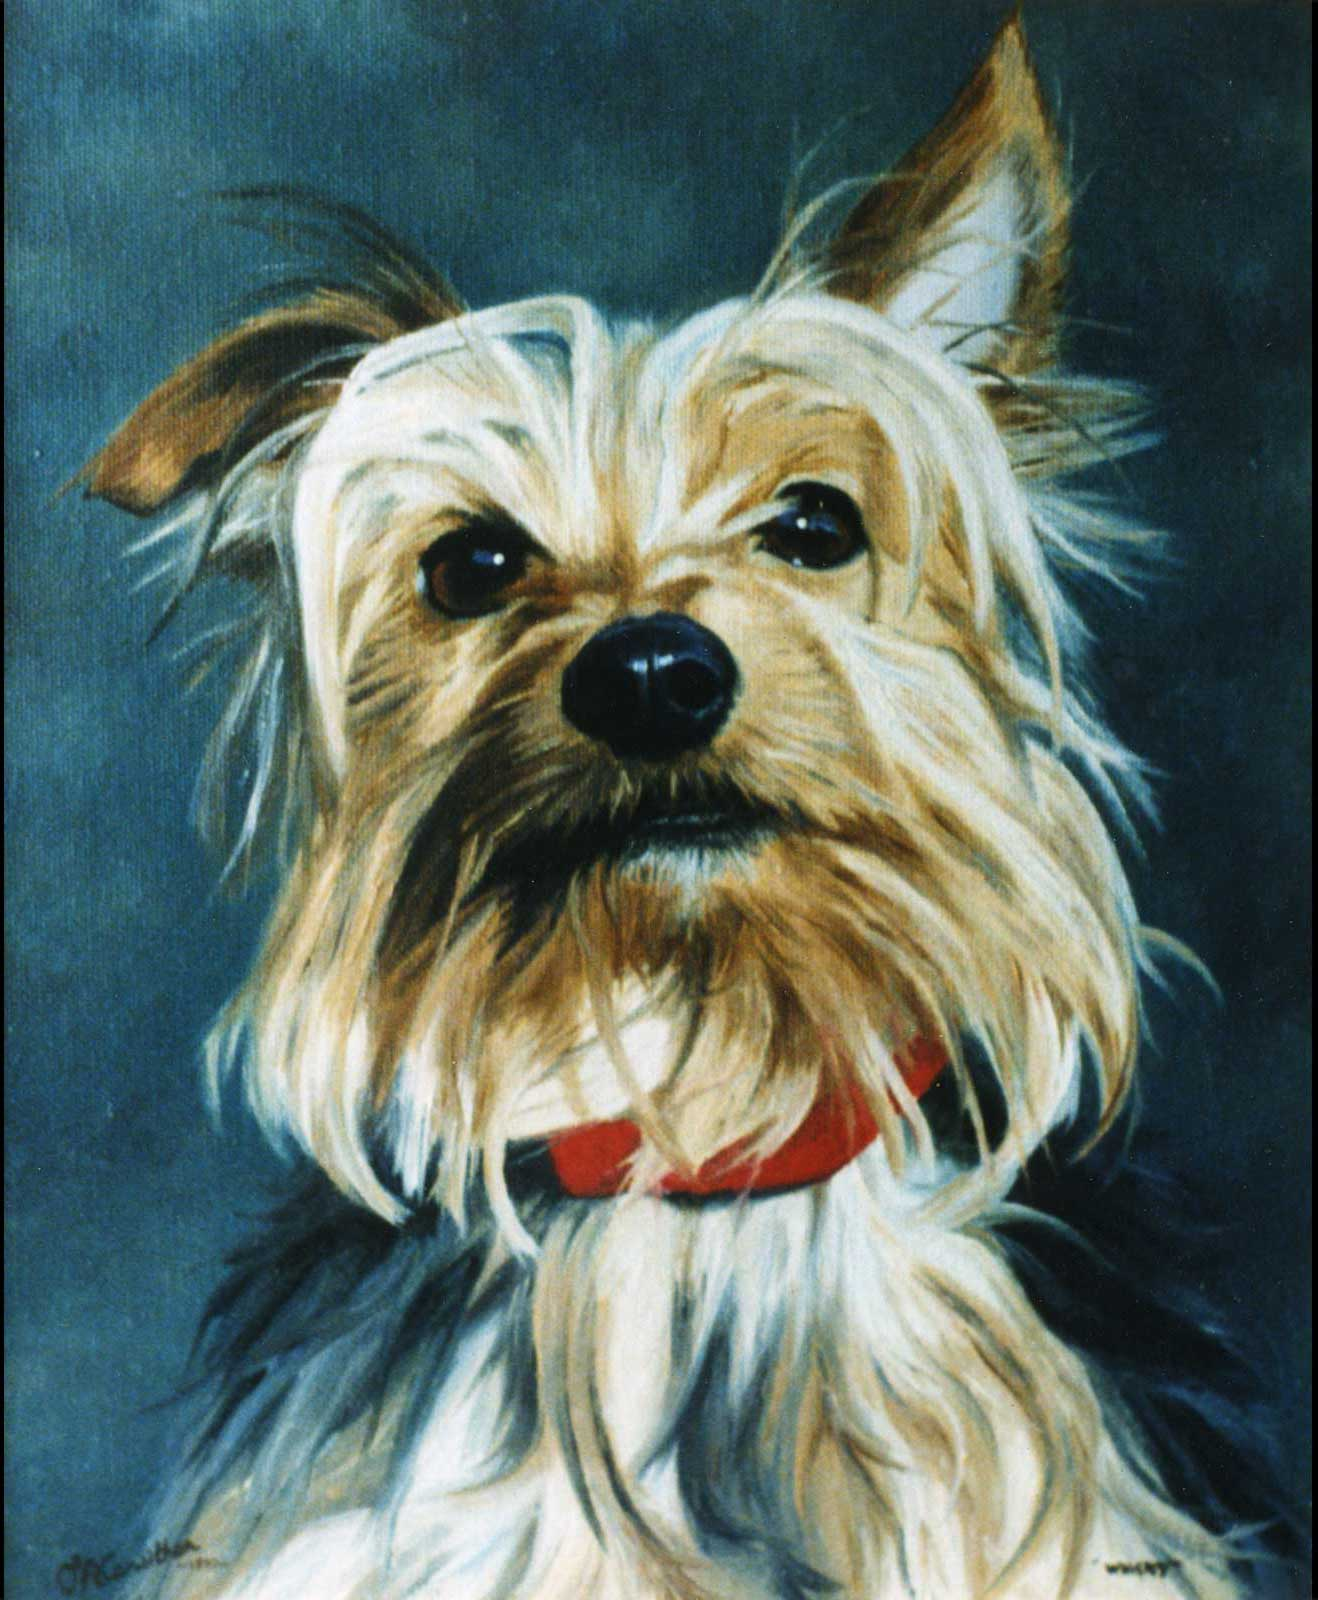 Yorkshire Terrier dog portrait oil painting on canvas